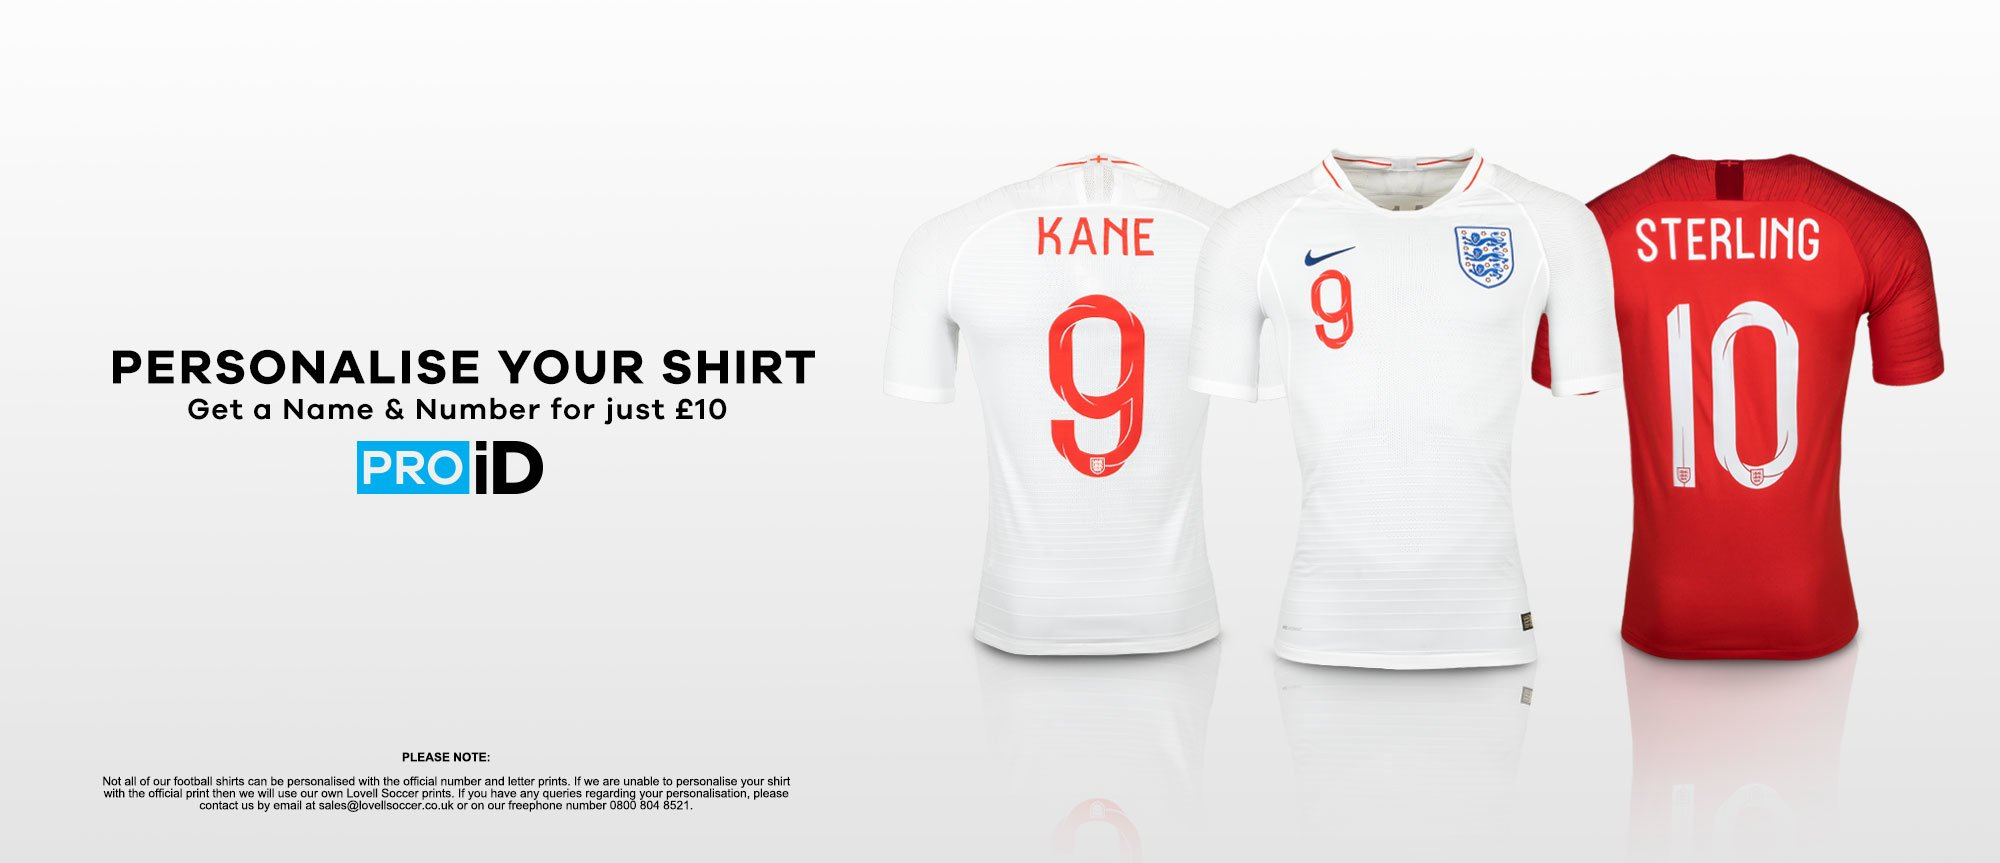 e61b841d5 PRO iD - Shirt Personalisation for only £10